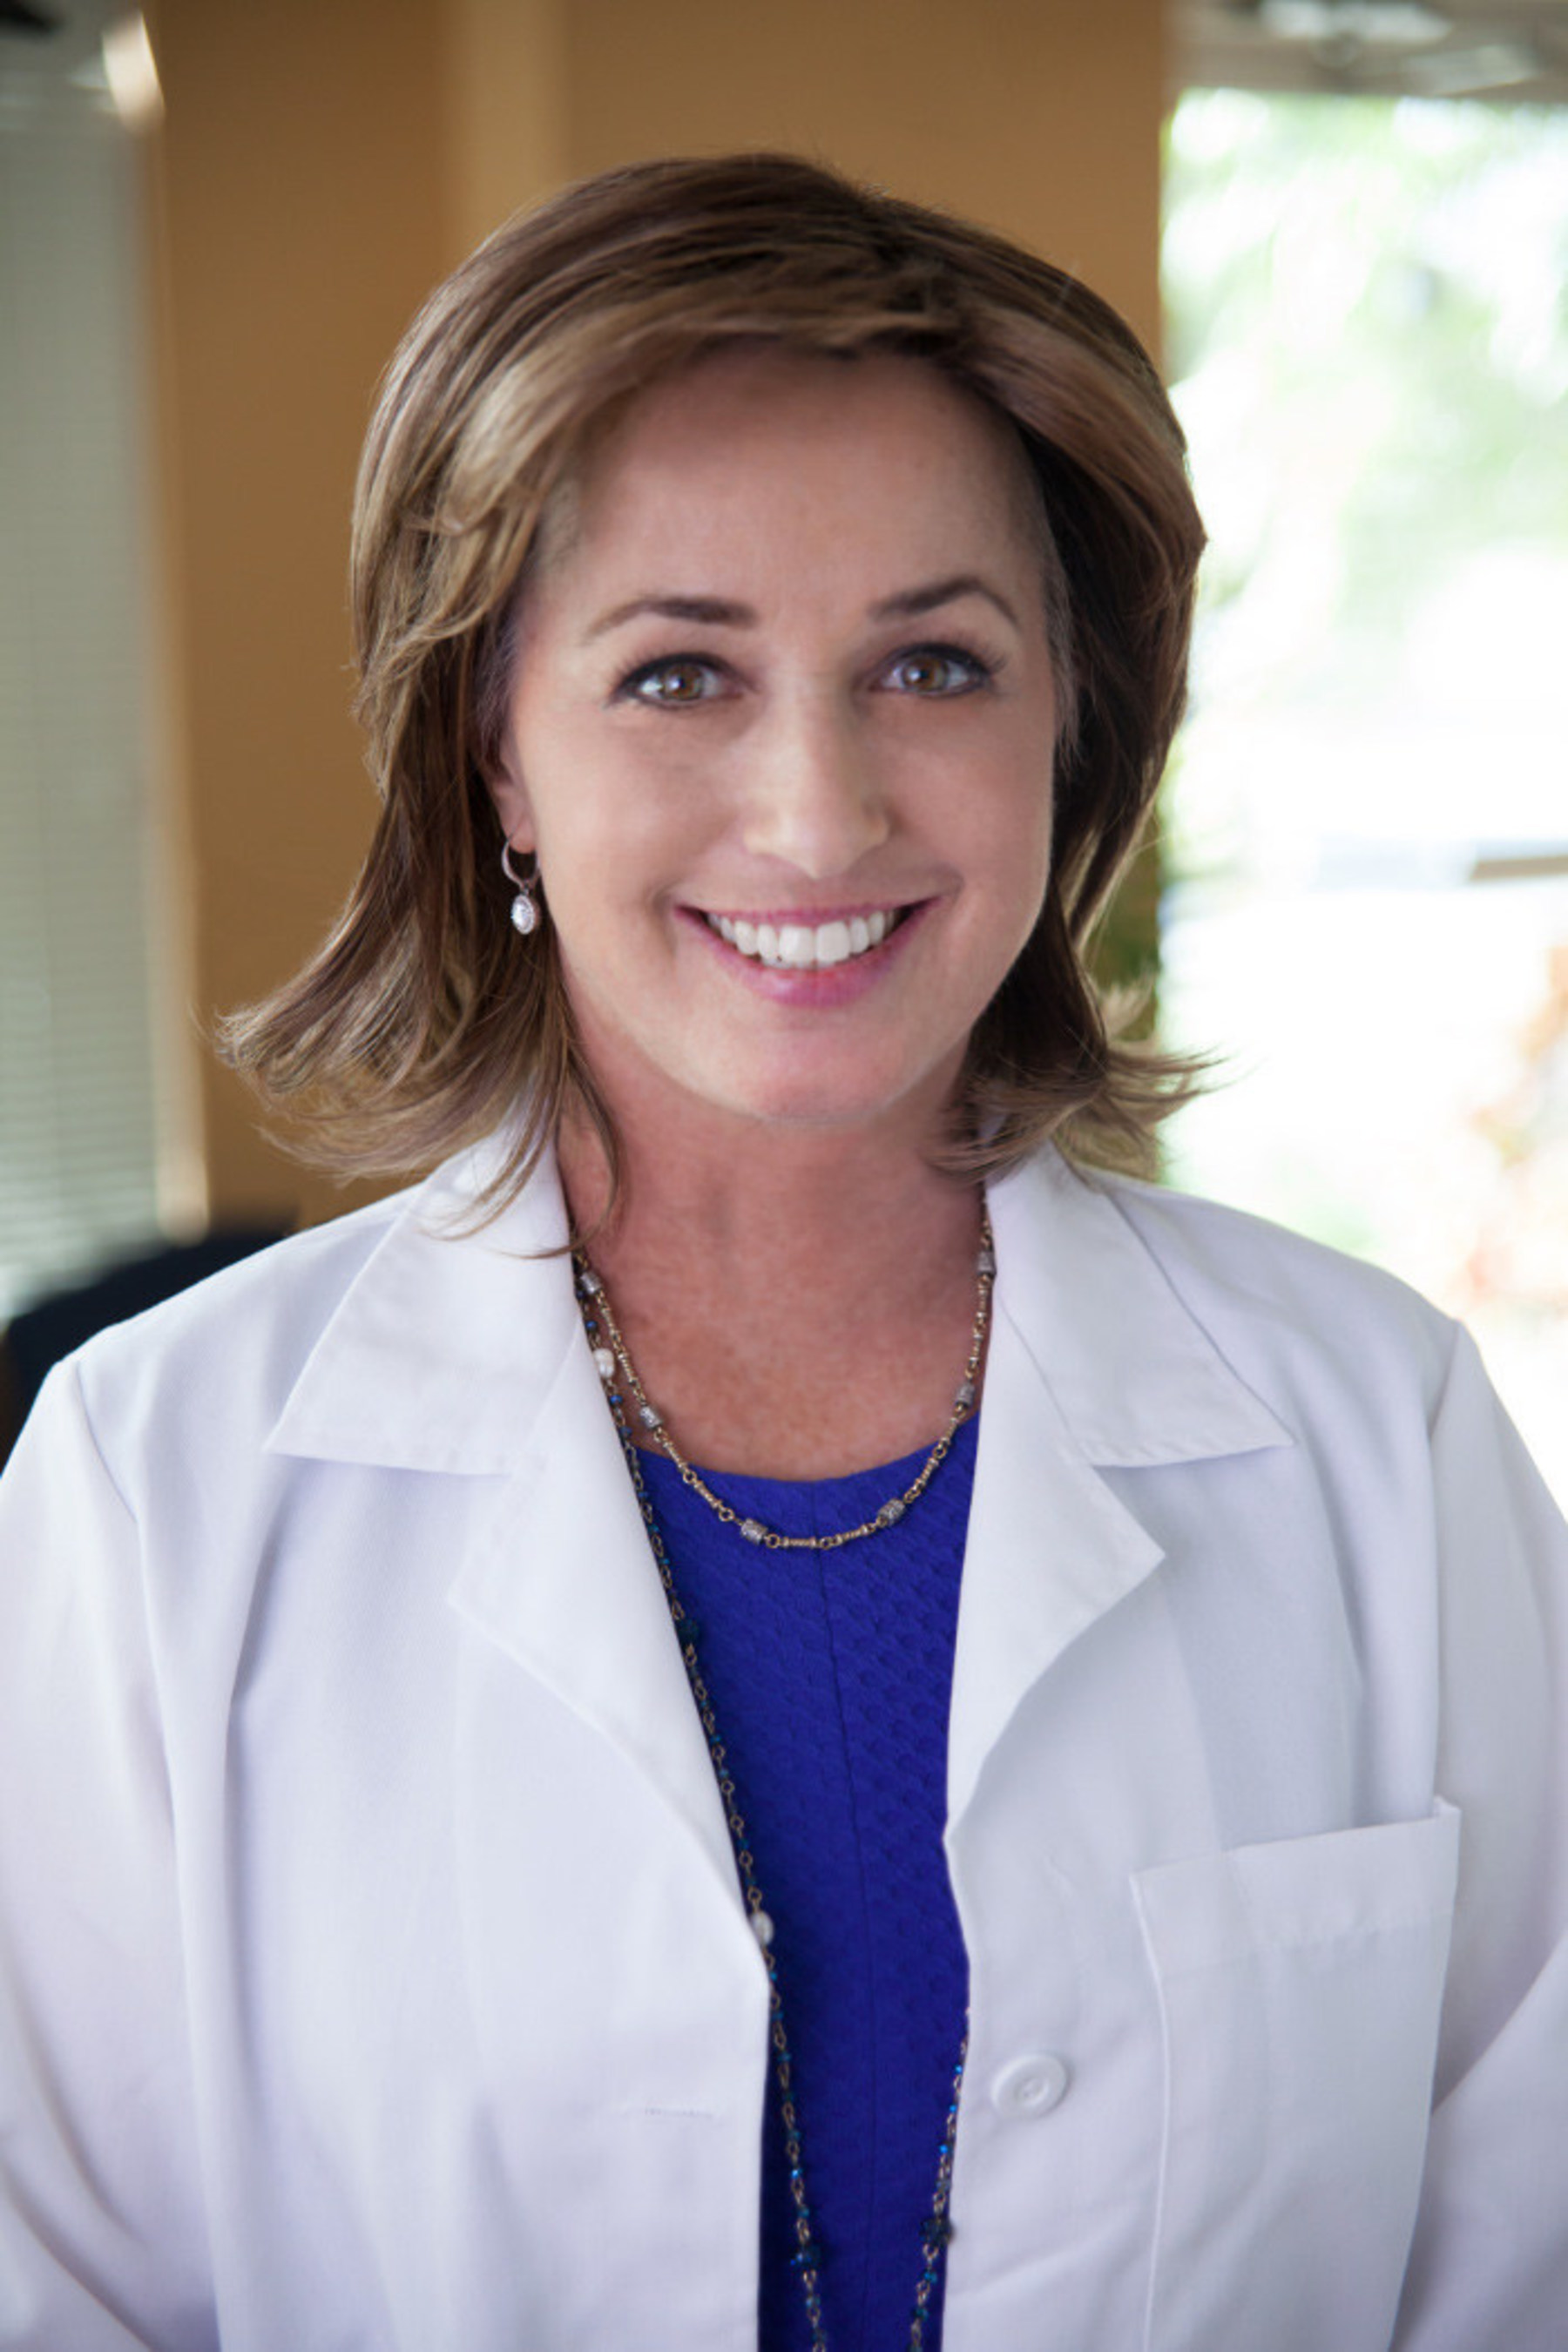 Dr. Suzanne LeBlang, Medical Director of the New Fibroid Education Center